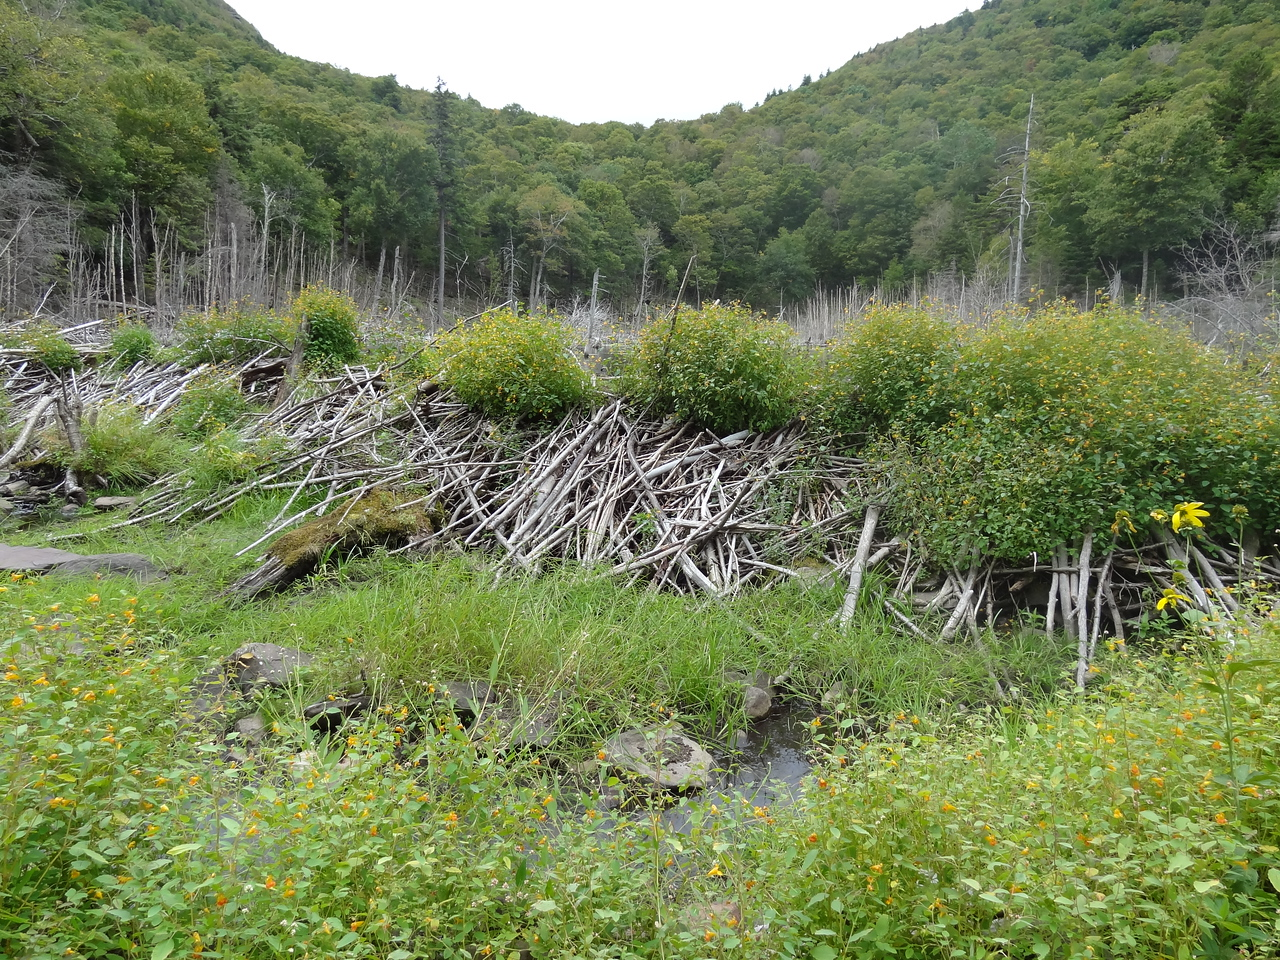 An old dam covered in spotted touch-me-nots.